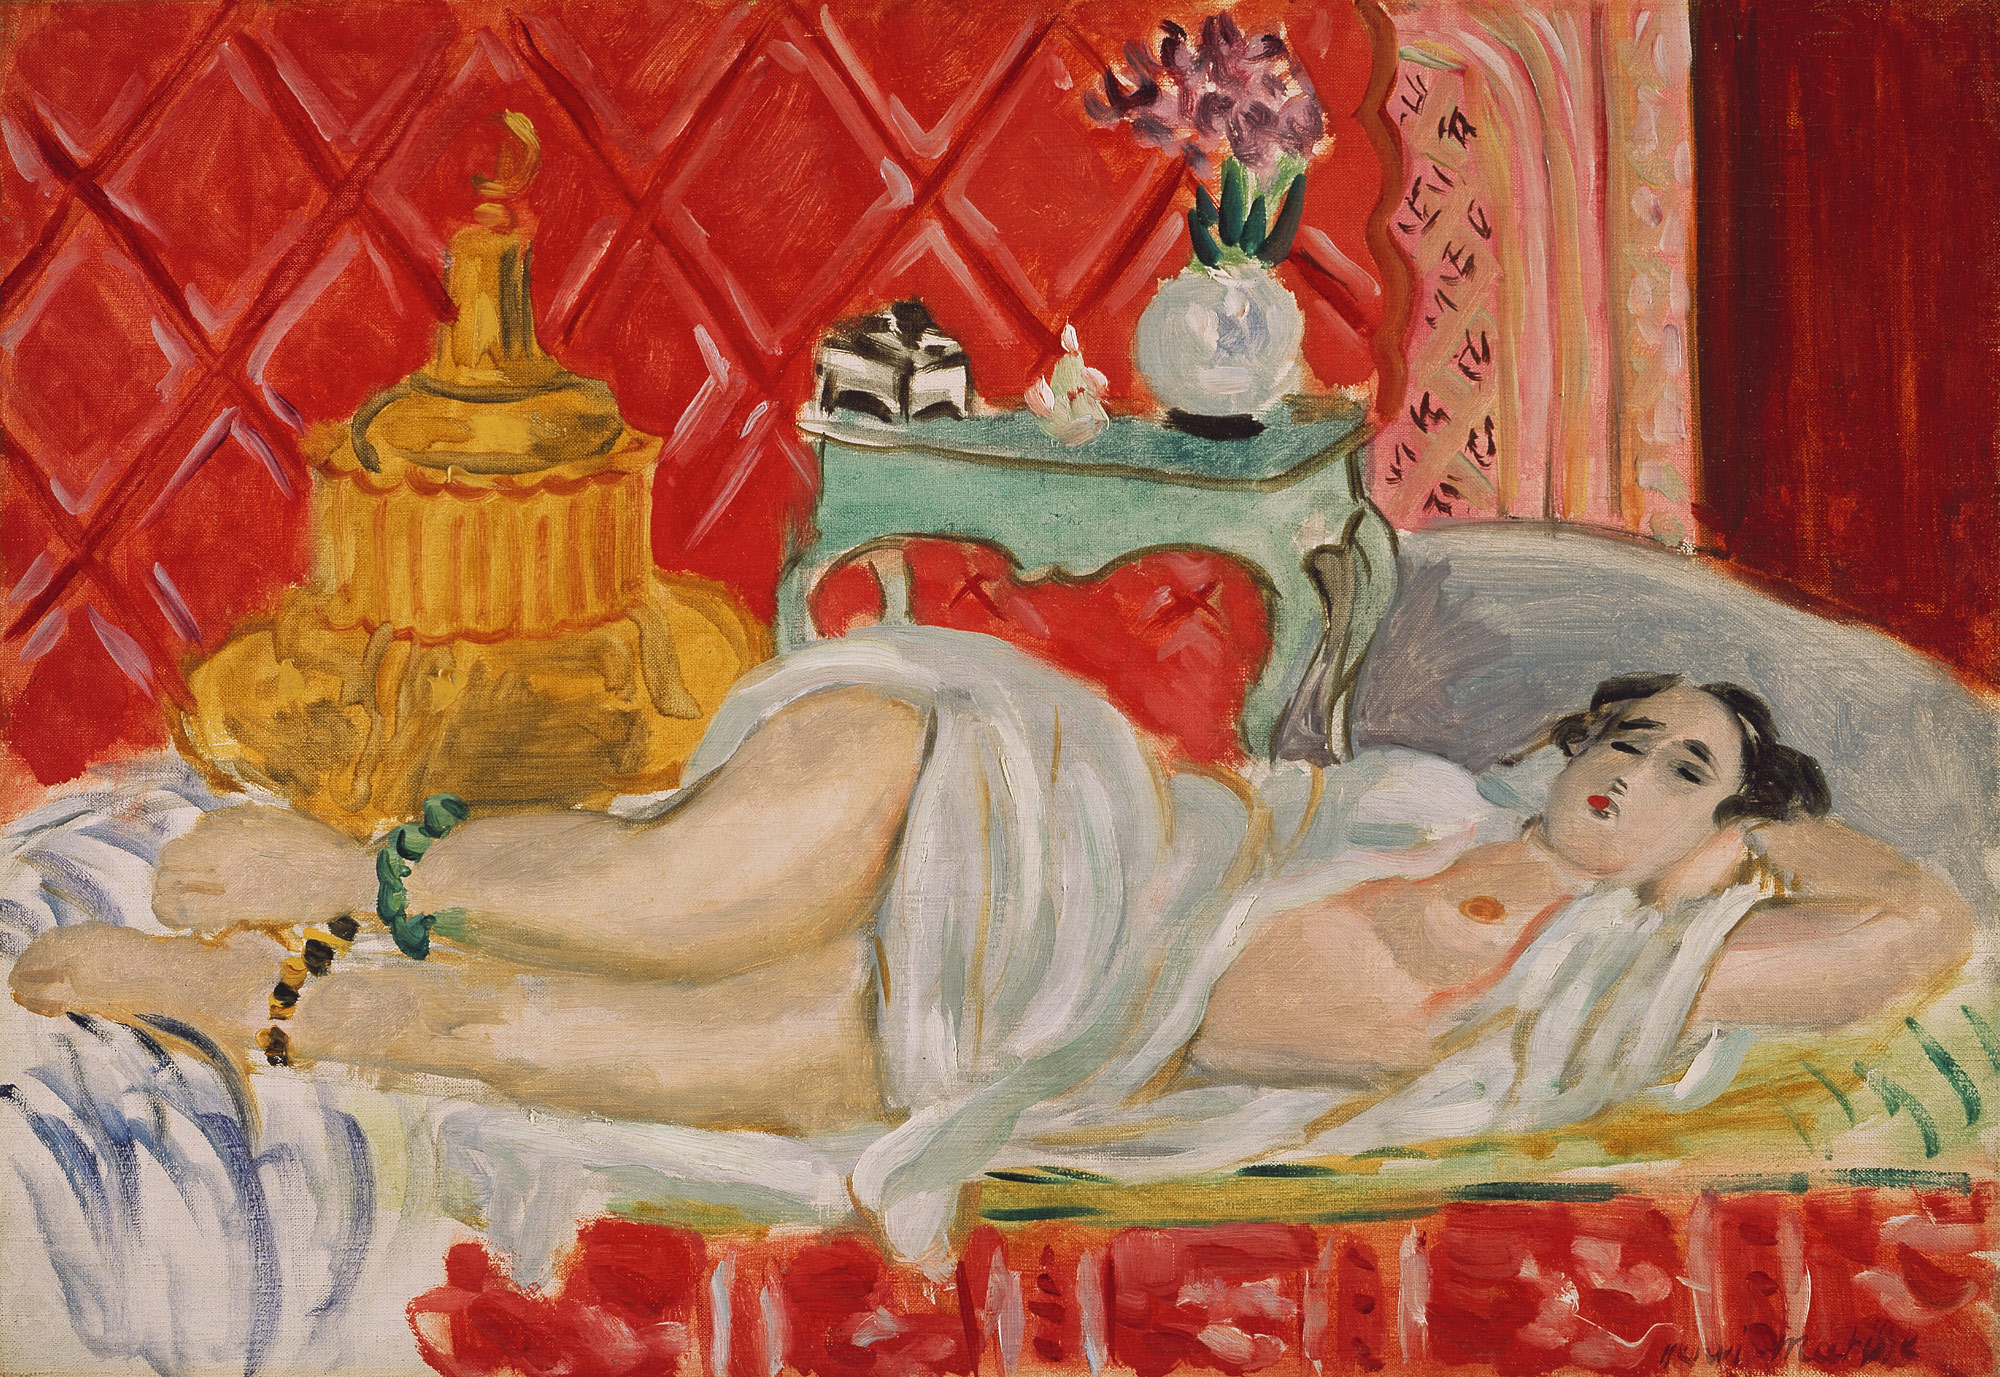 Matisse, 'Odalisque, Harmony in Red', 1926